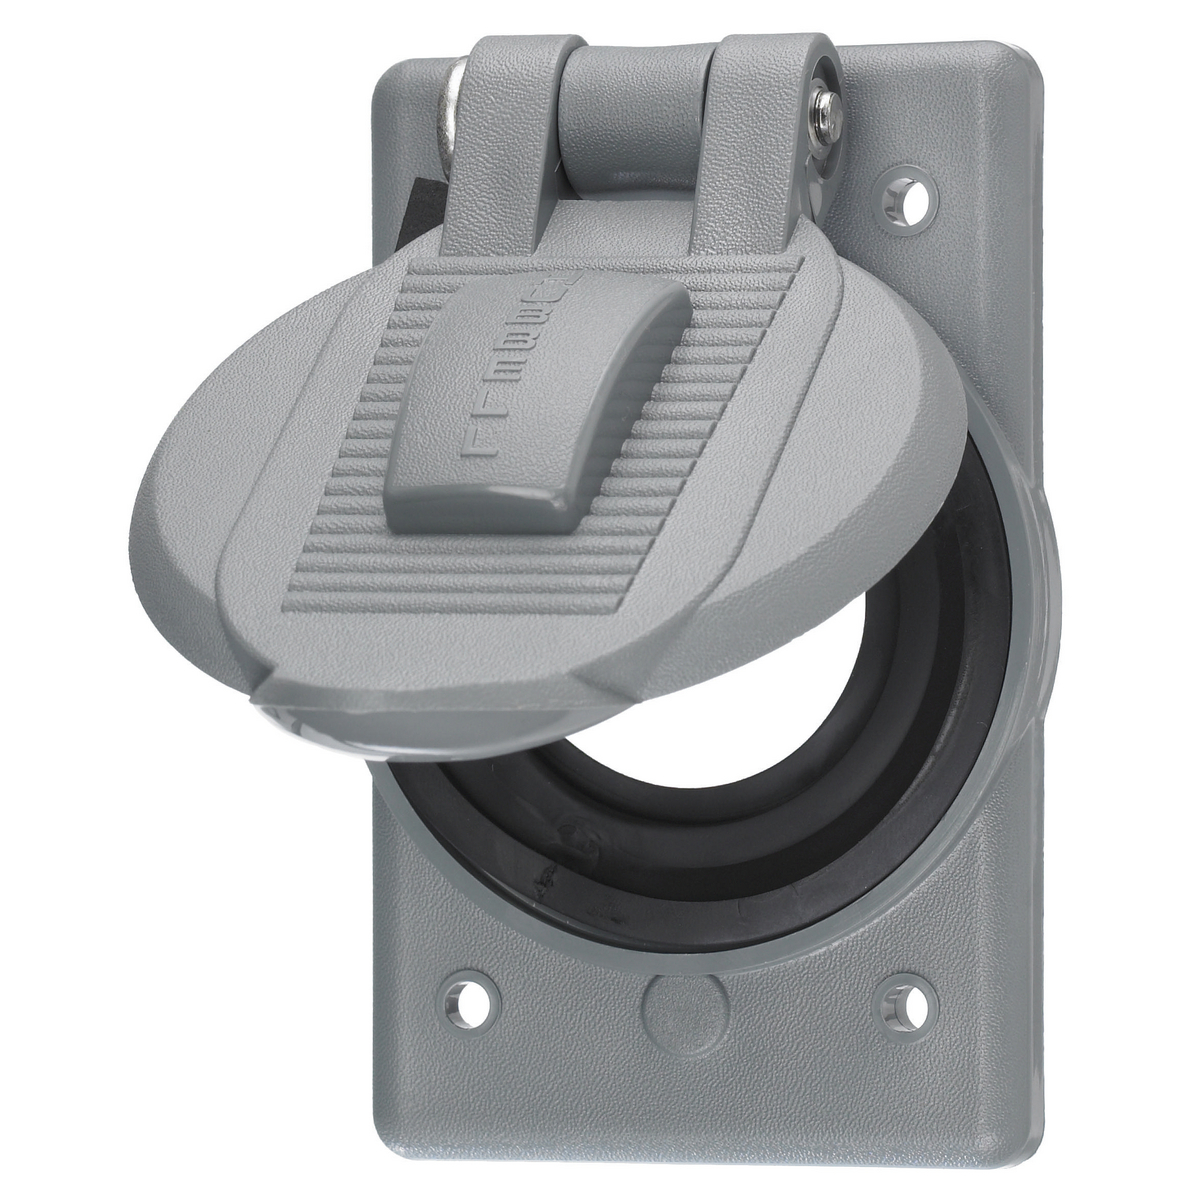 Hubbell HBL7428WOG Gray Thermoplastic Device Mount Weatherproof Lift Cover